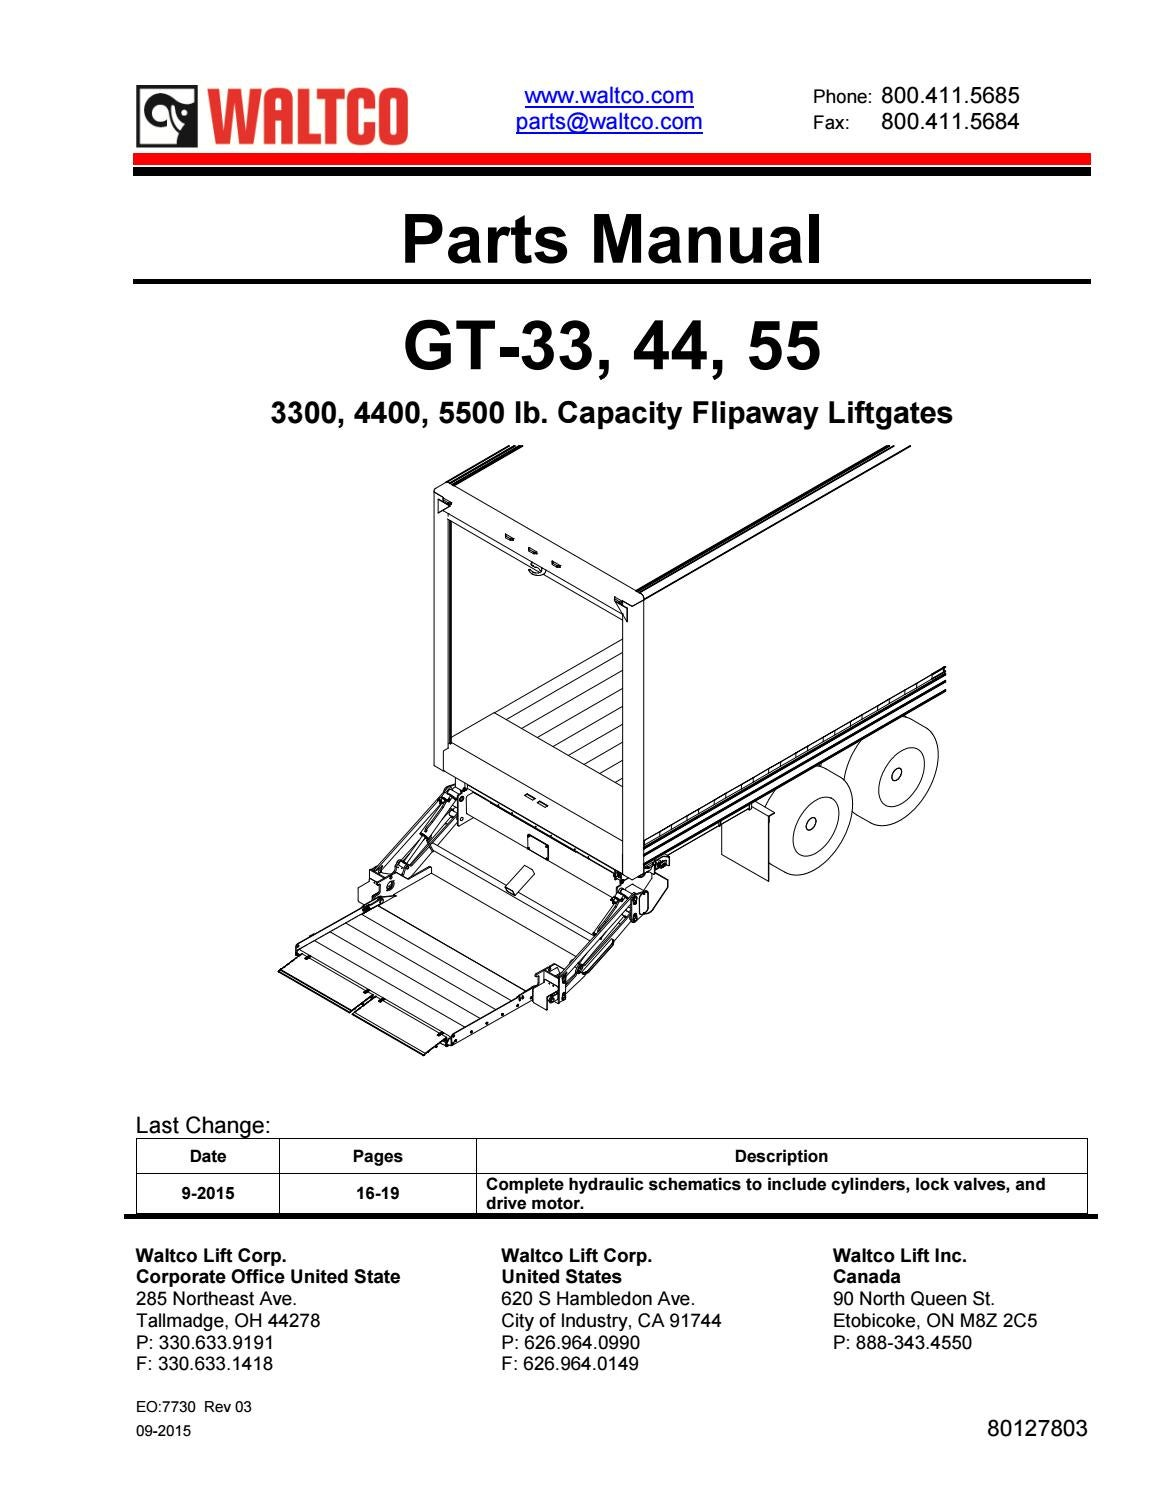 Waltco GT Series Liftgate Parts Manual by THE Liftgate Parts